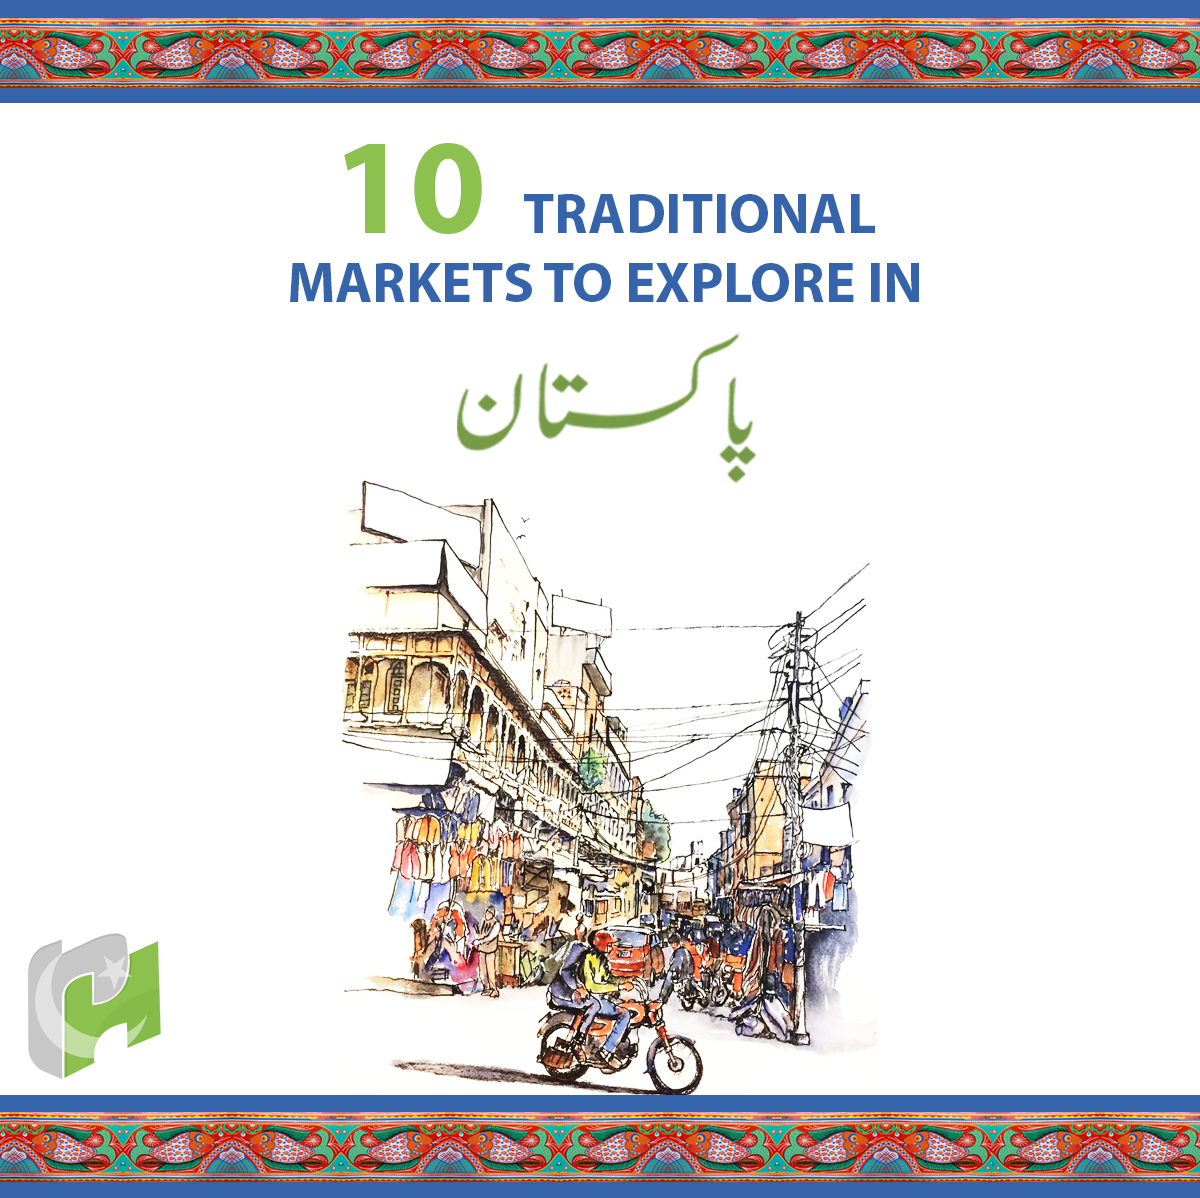 Traditional marketplaces Pakistan, bazar, traditional markets of Pakistan